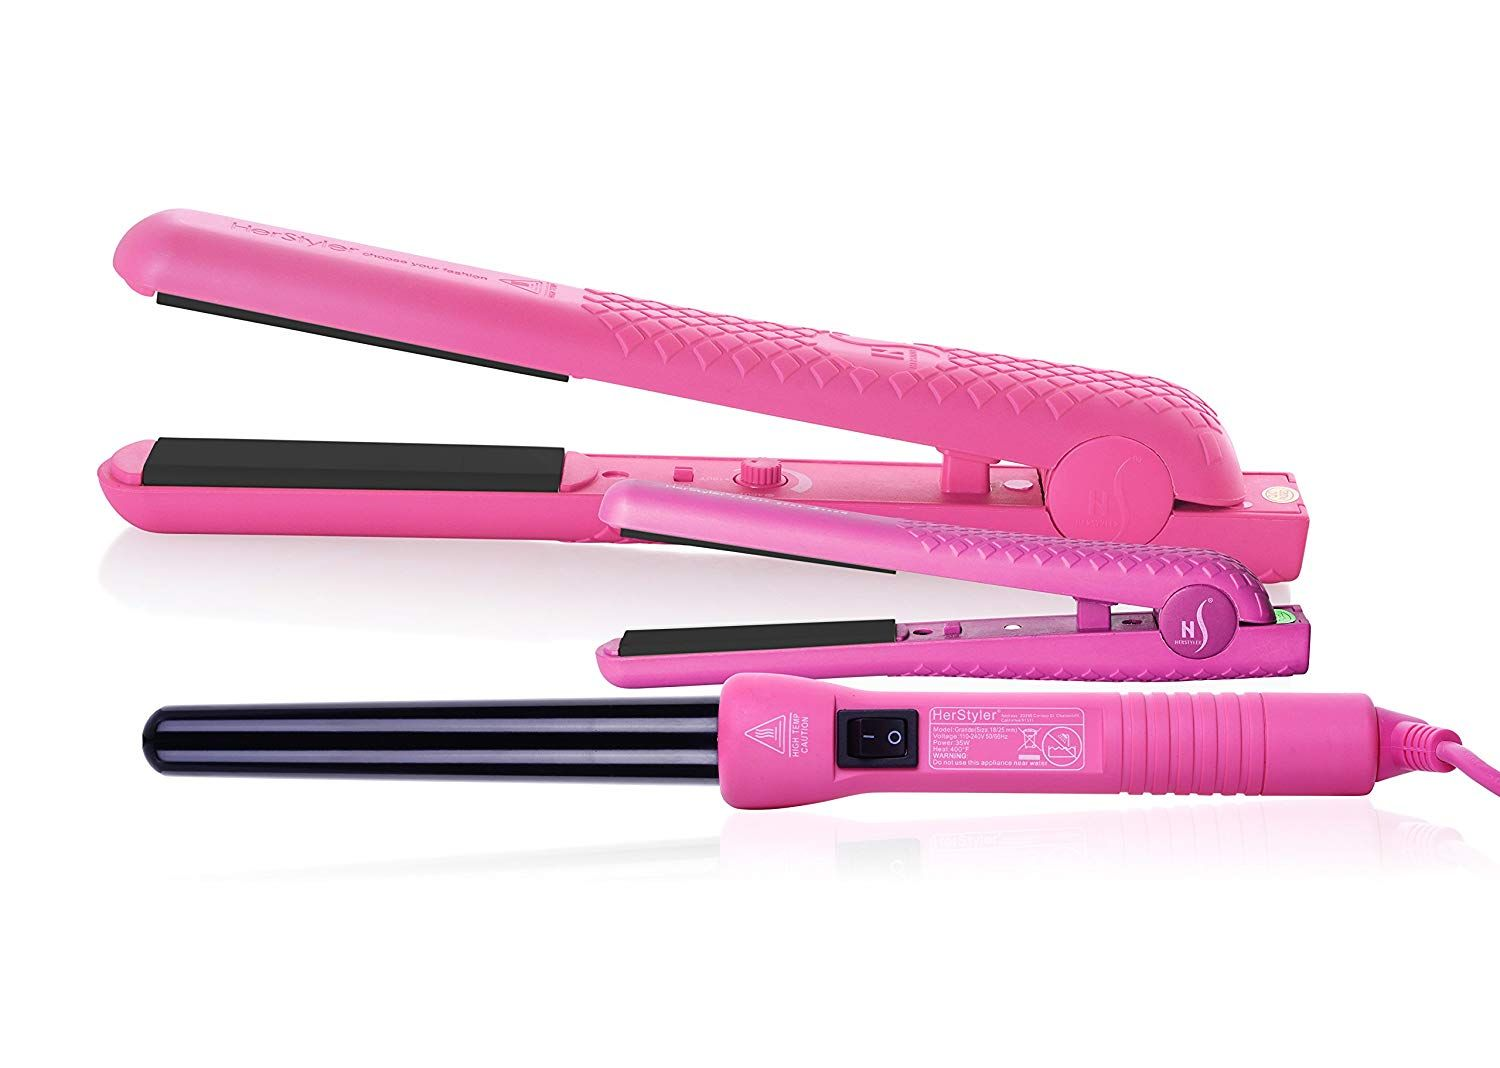 Herstyler Classic Forever Ceramic Flat Iron Find Out More About The Great Product At The Image Link Ceramic Flat Iron Ceramic Hair Straightener Flat Iron